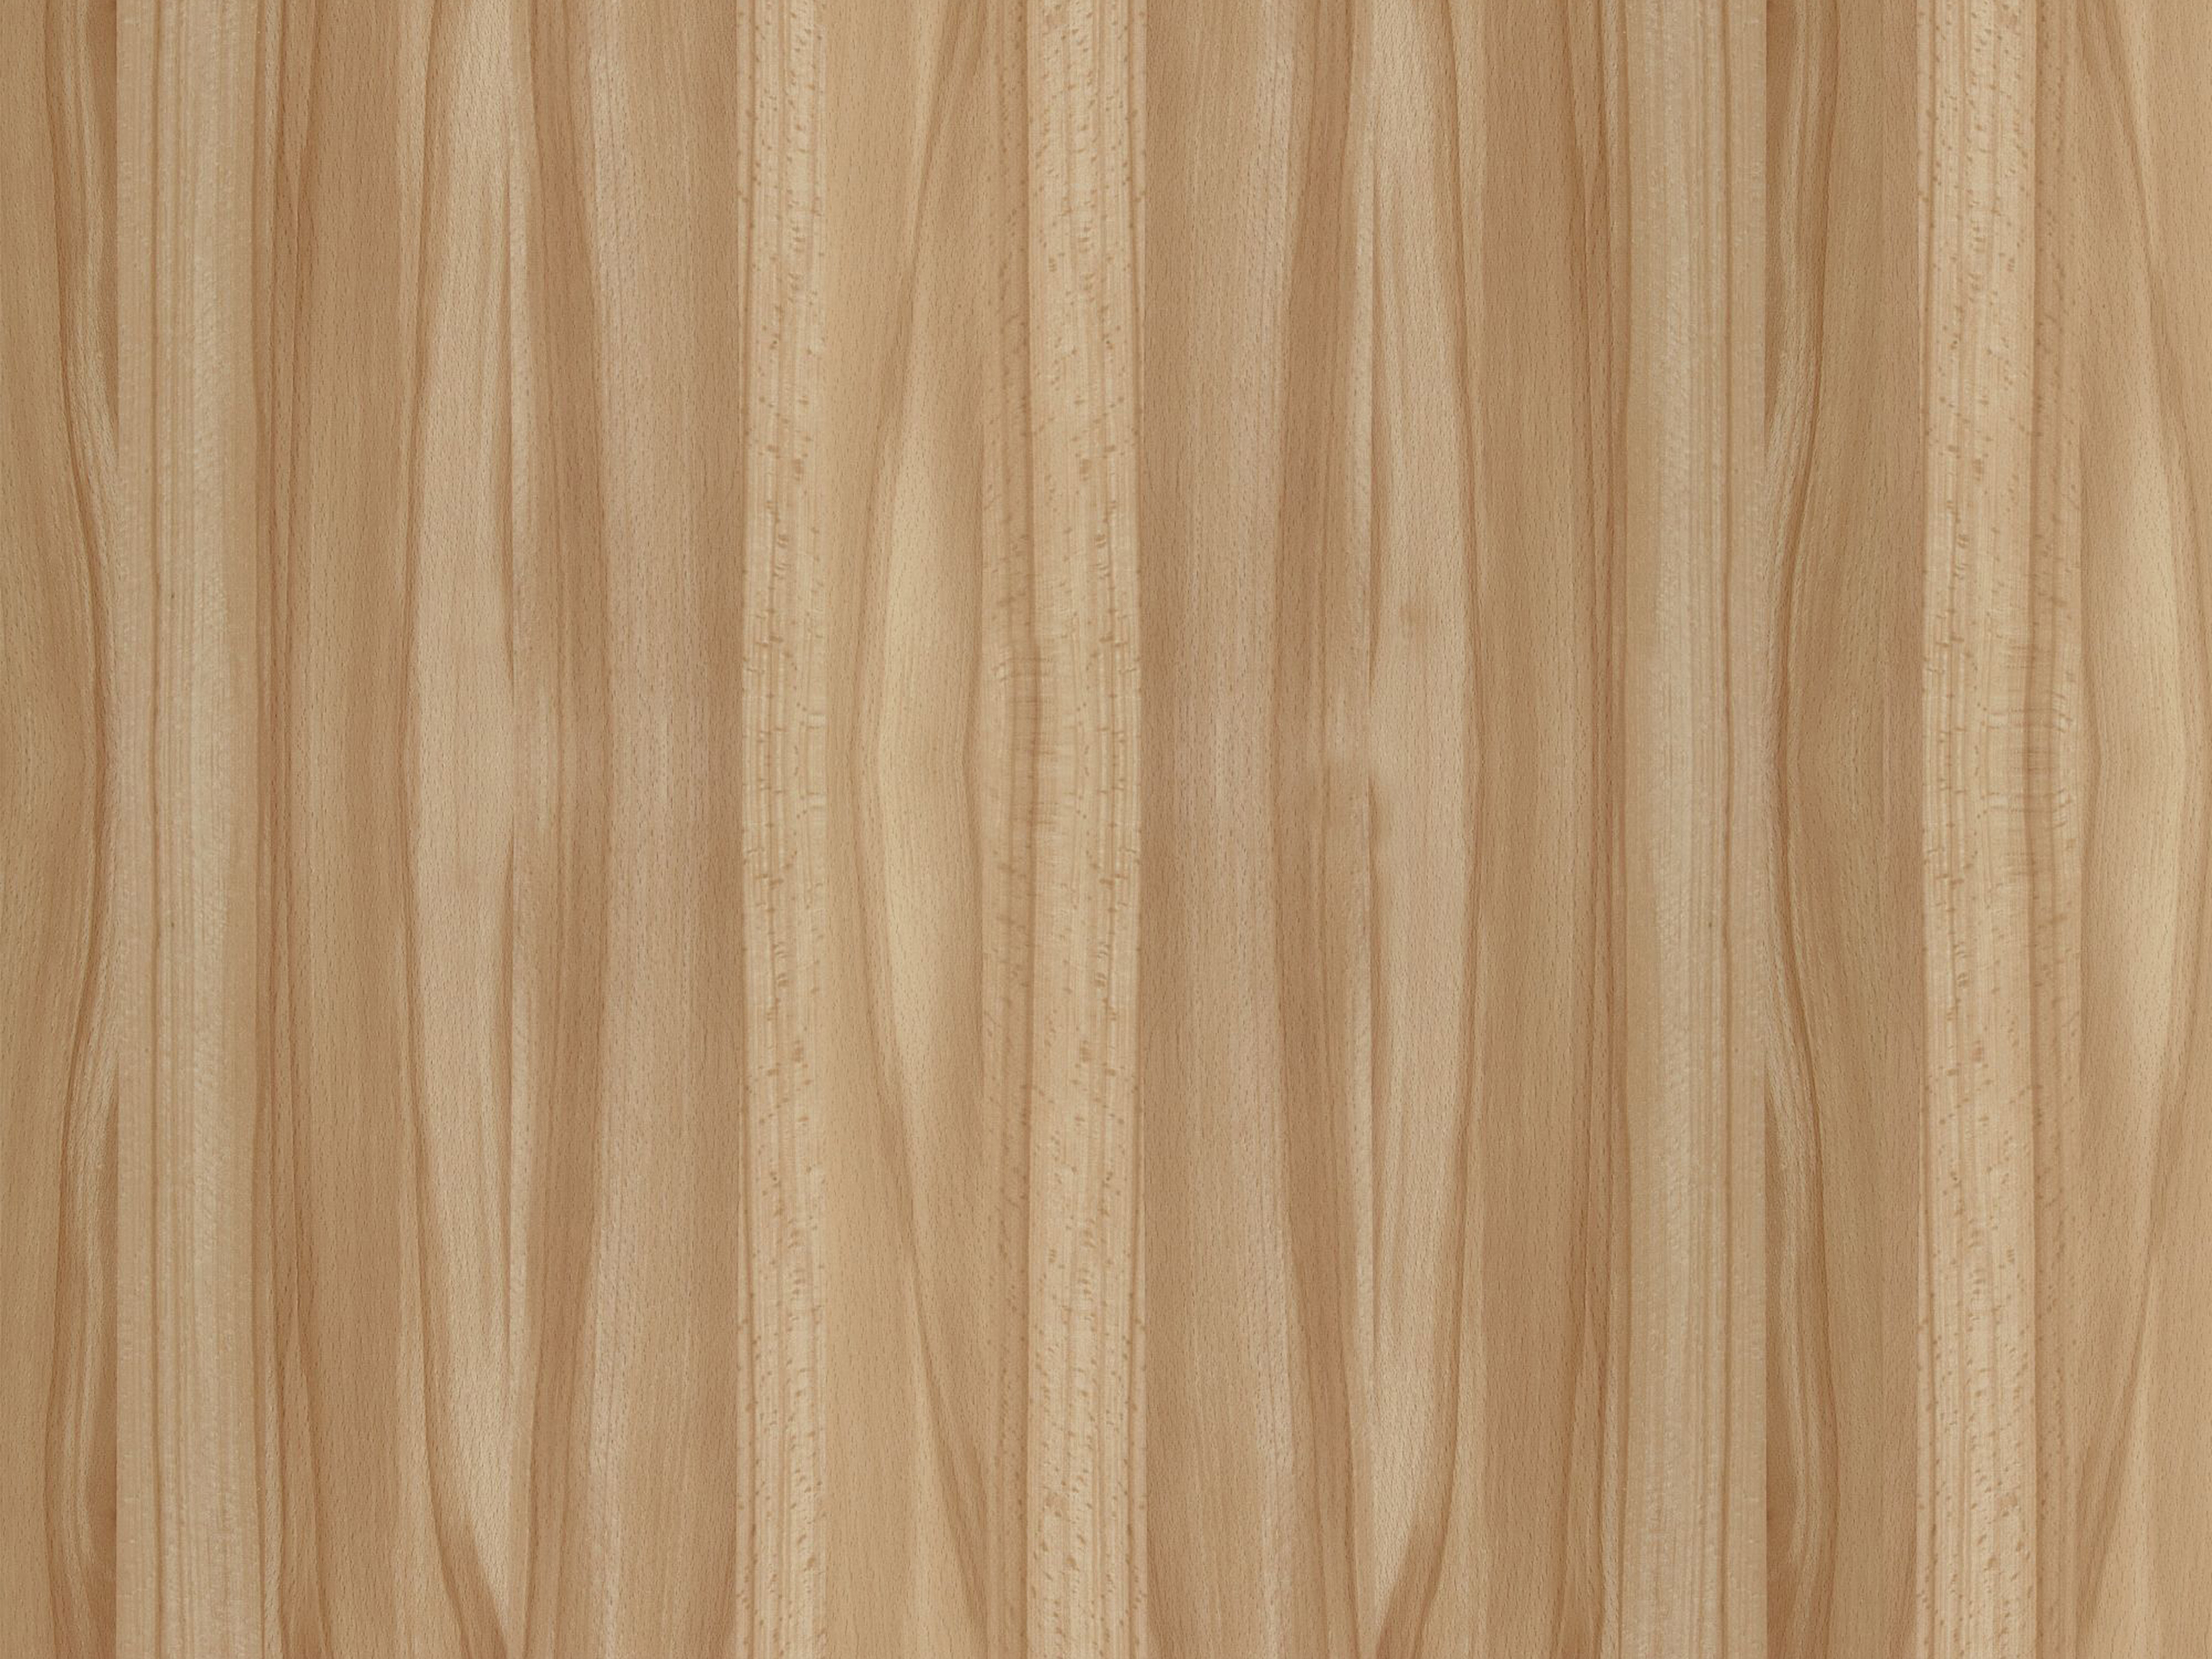 Hd wood wallpapers wallpapersafari 50 hd wood wallpapers for free download voltagebd Choice Image